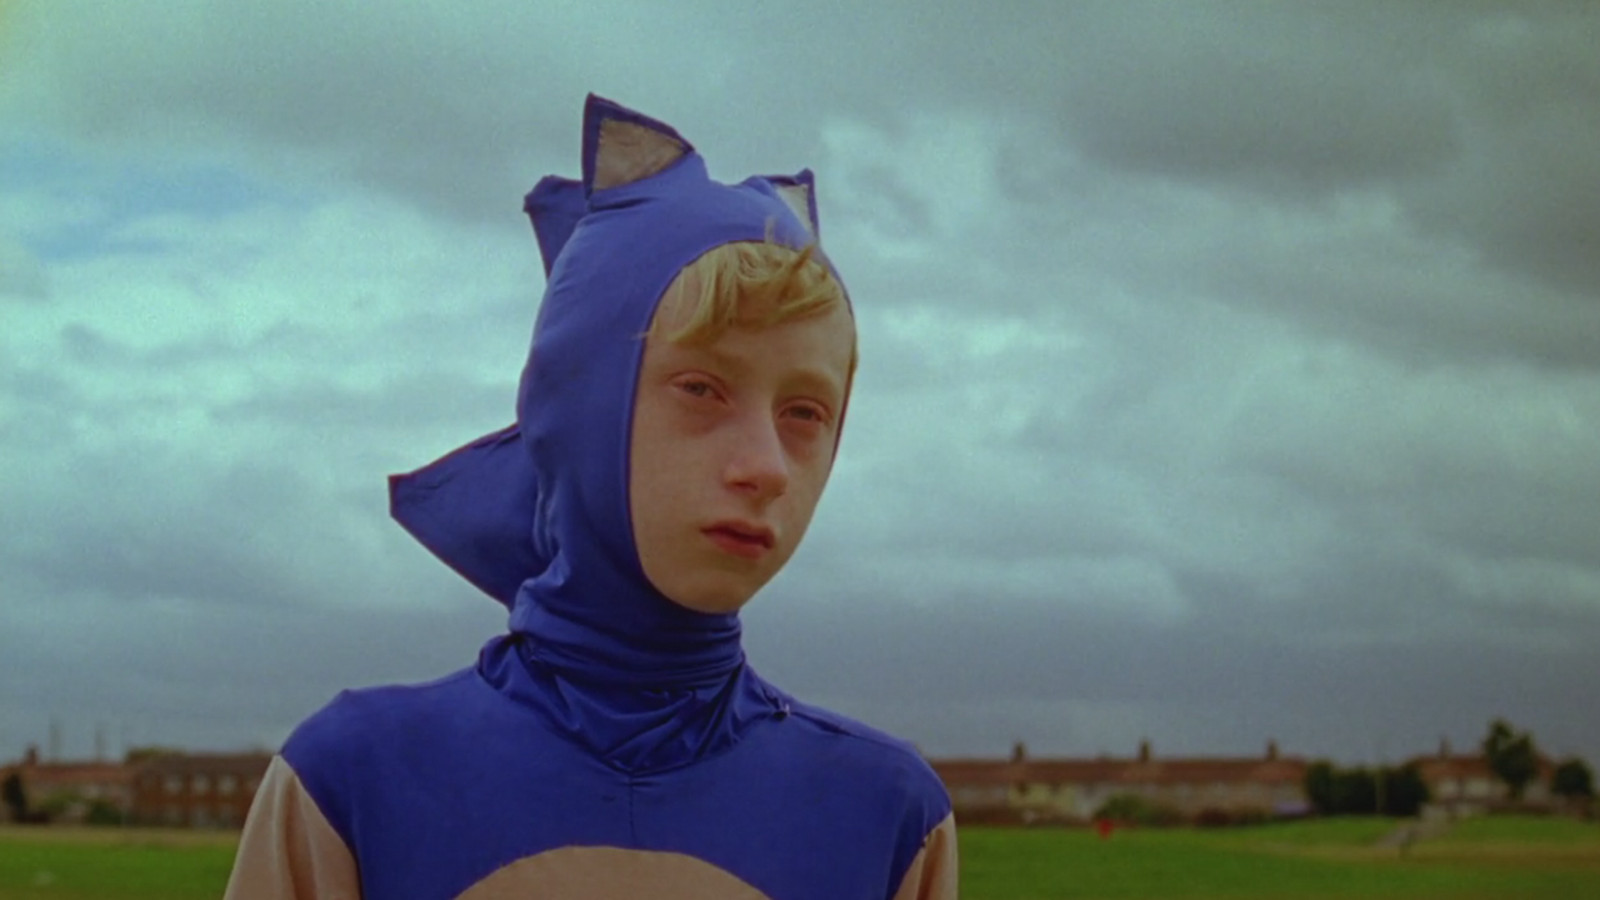 A Short Sonic The Hedgehog Film That Explores Loneliness